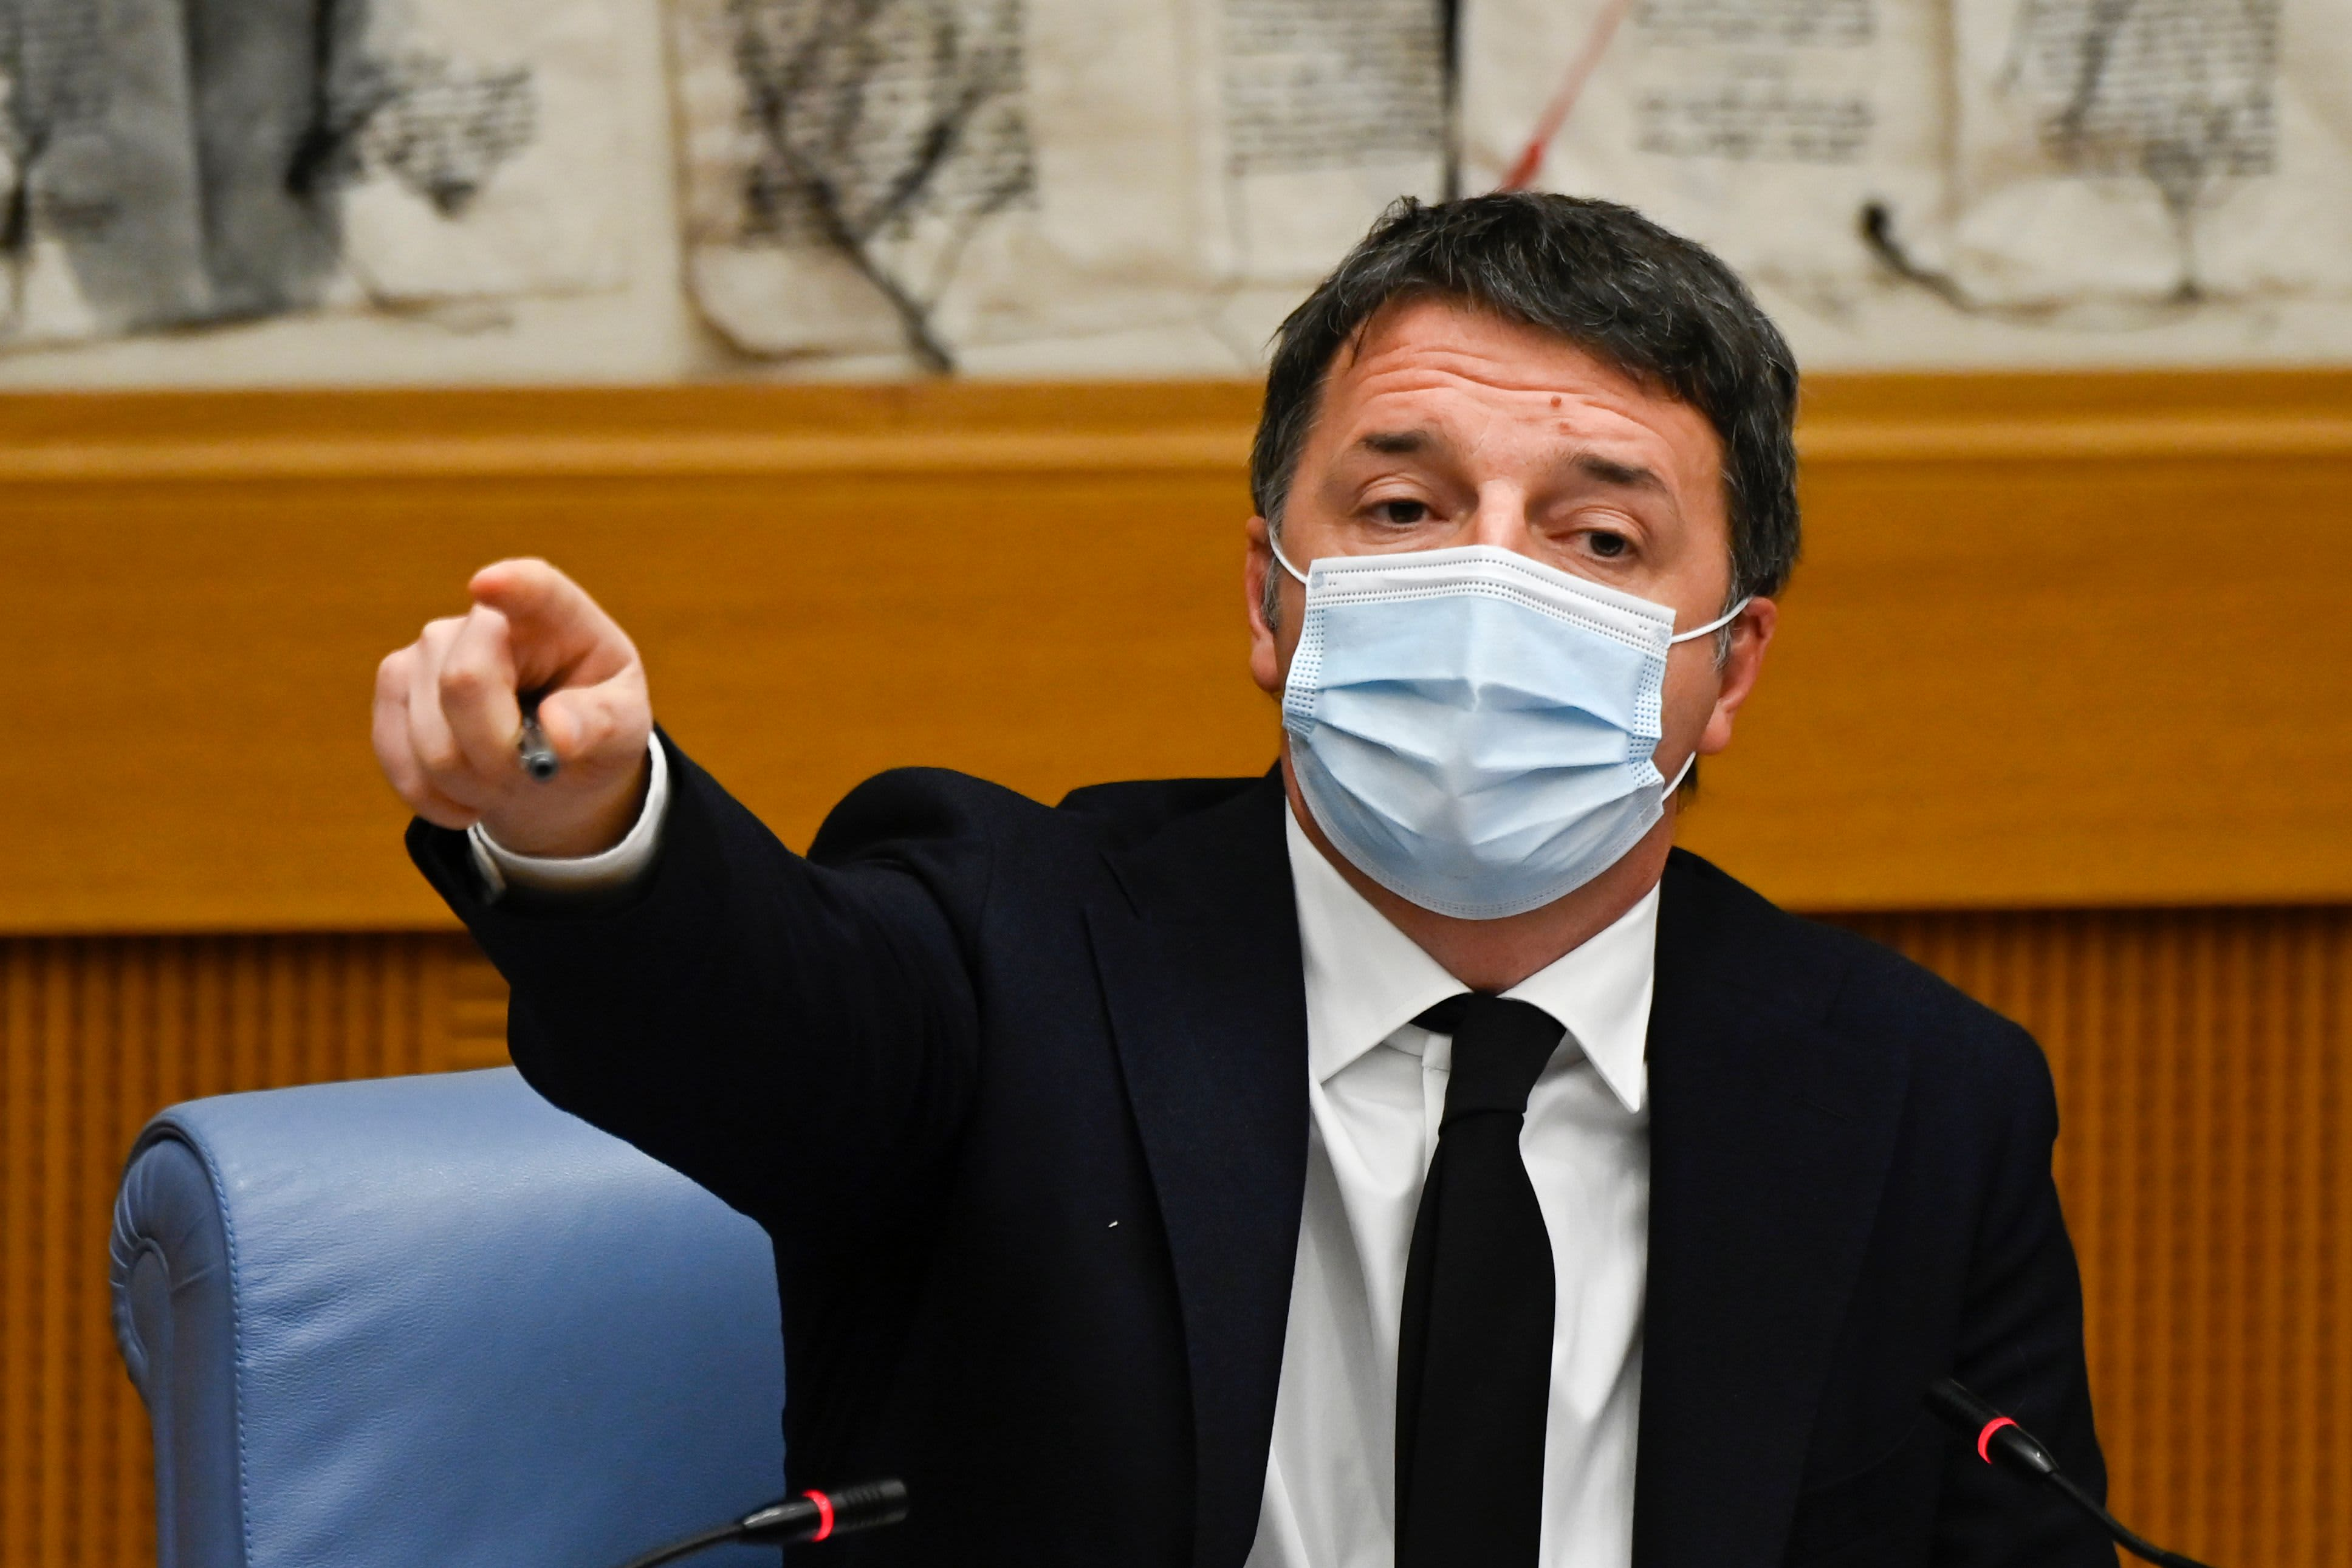 Renzi: Italy's government in crisis after former PM pulls support